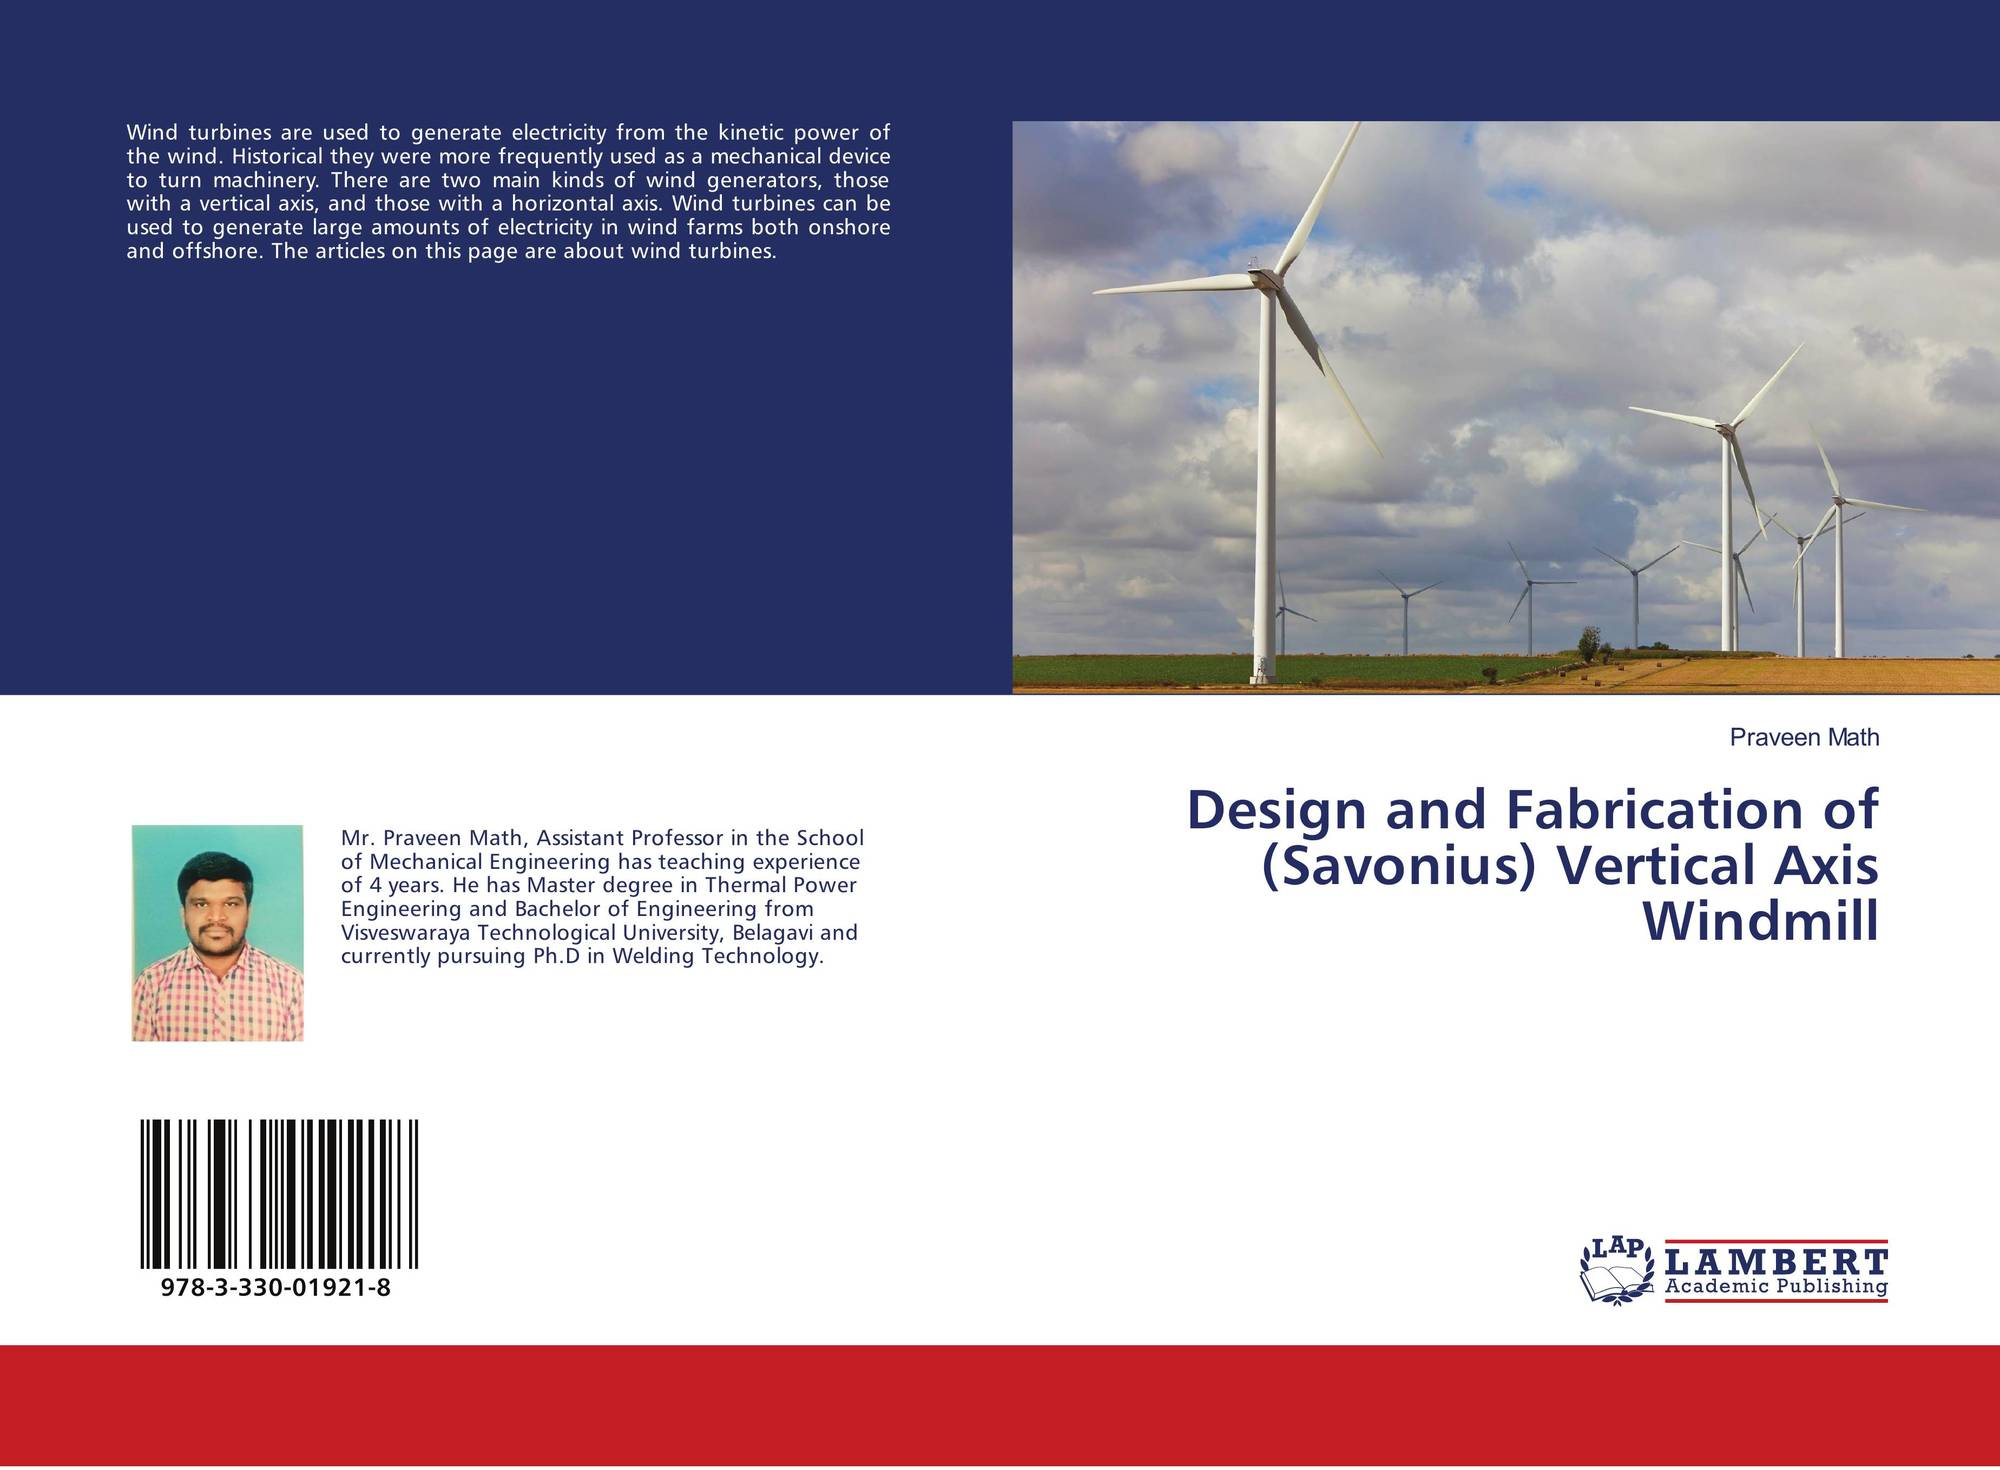 Design and Fabrication of (Savonius) Vertical Axis Windmill